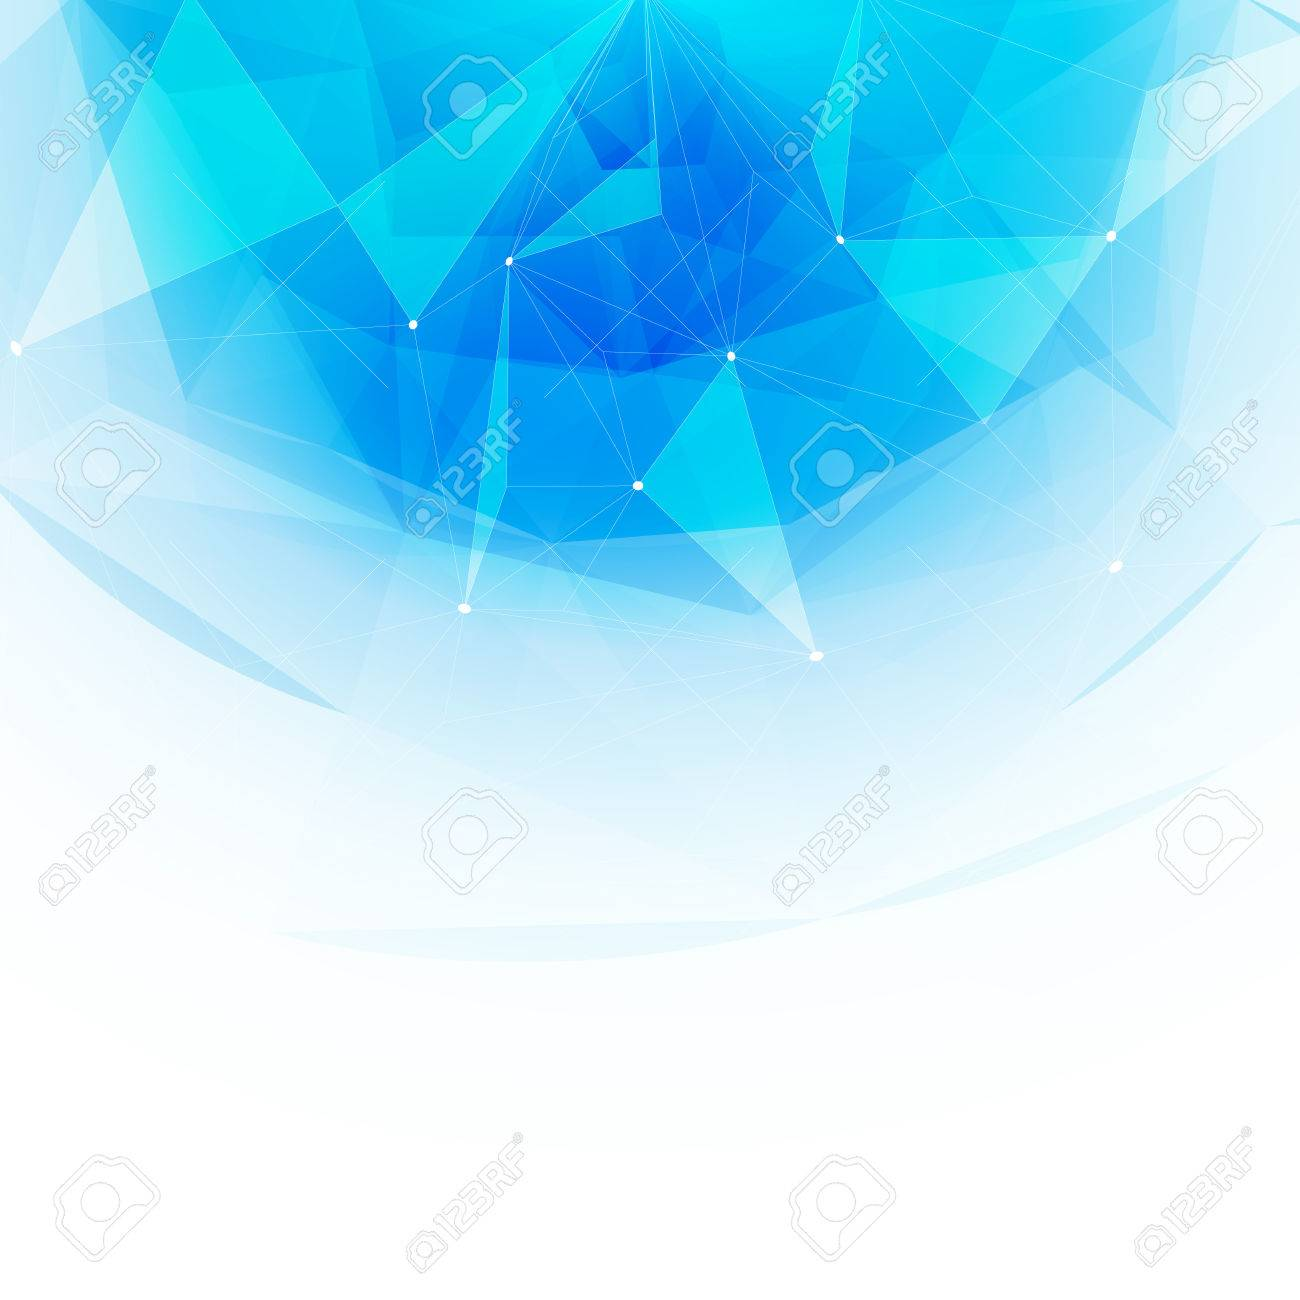 2c12dd0e9d3 Colorful abstract crystal background. Ice or jewel structure. Blue bright  color. Stock Vector